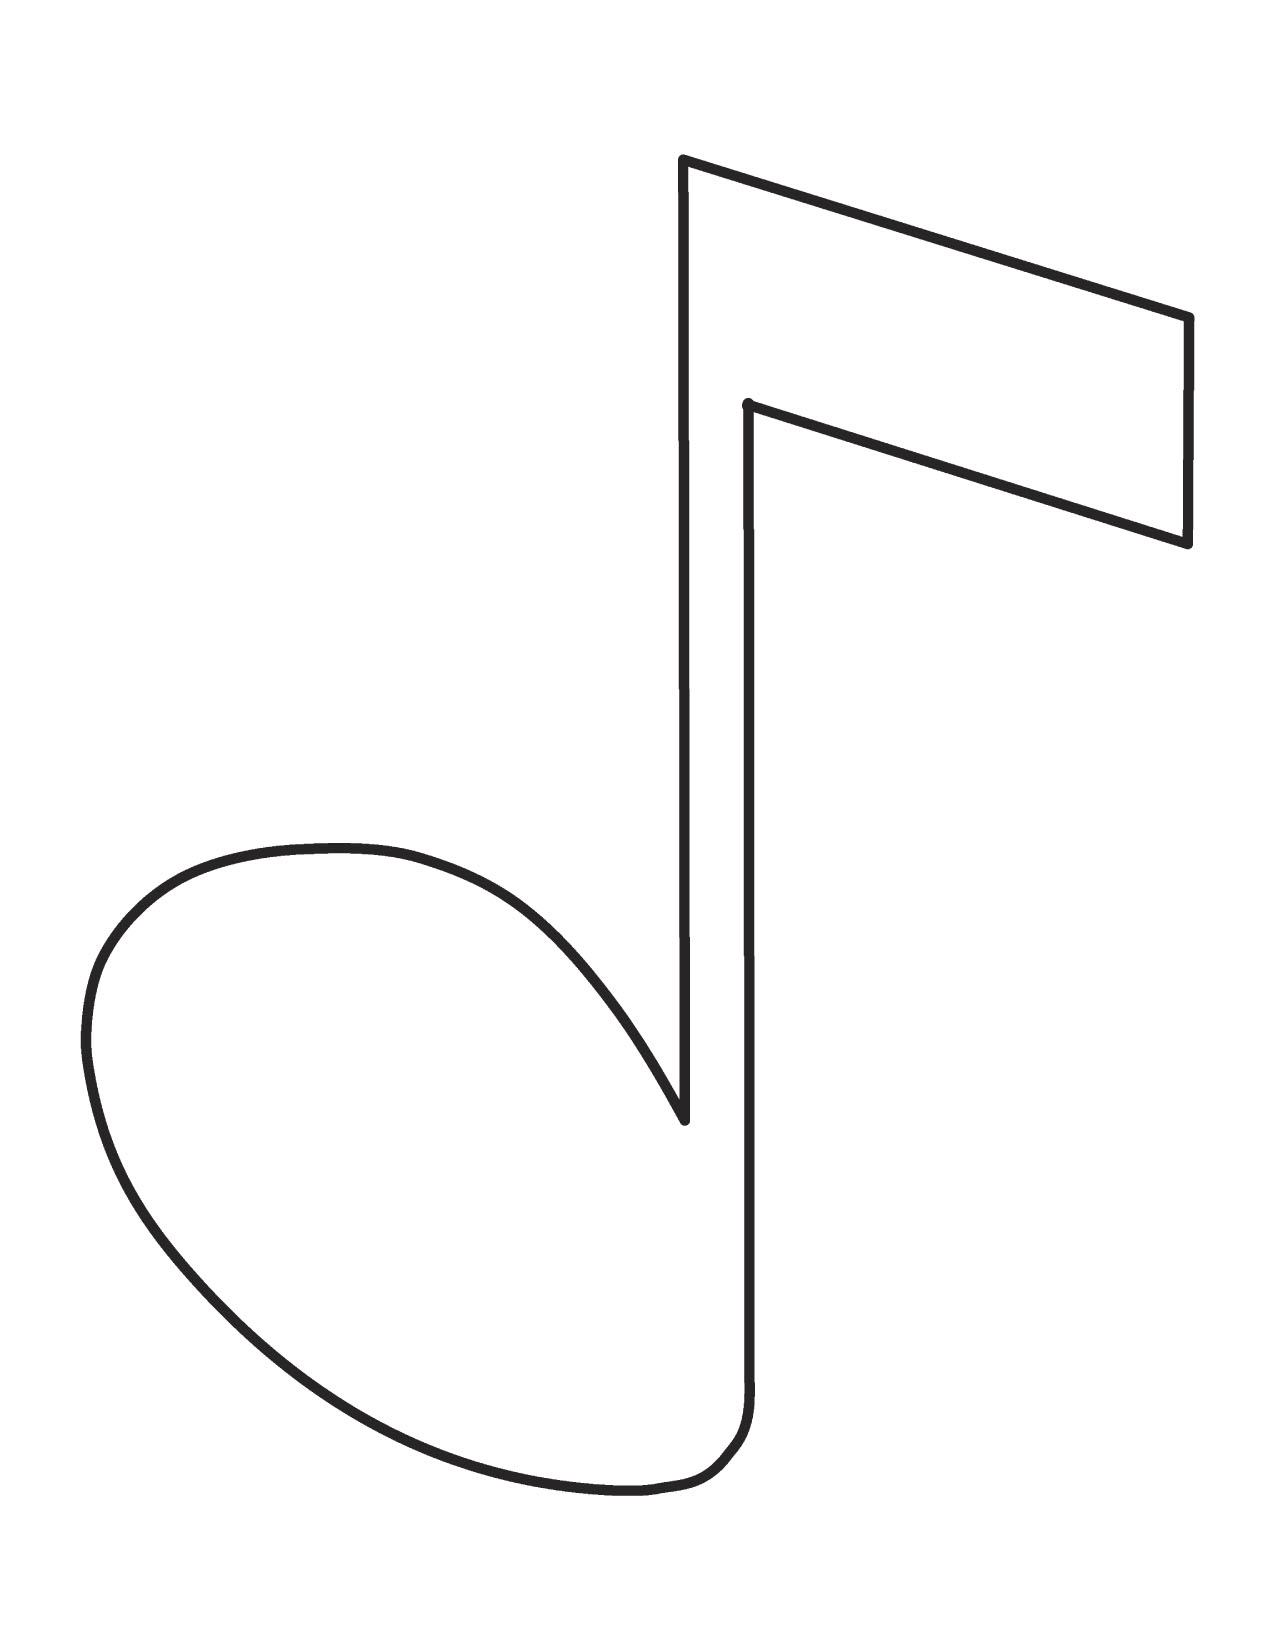 Music Notes Coloring Pages Preschoolers to Print 15g - Free For kids